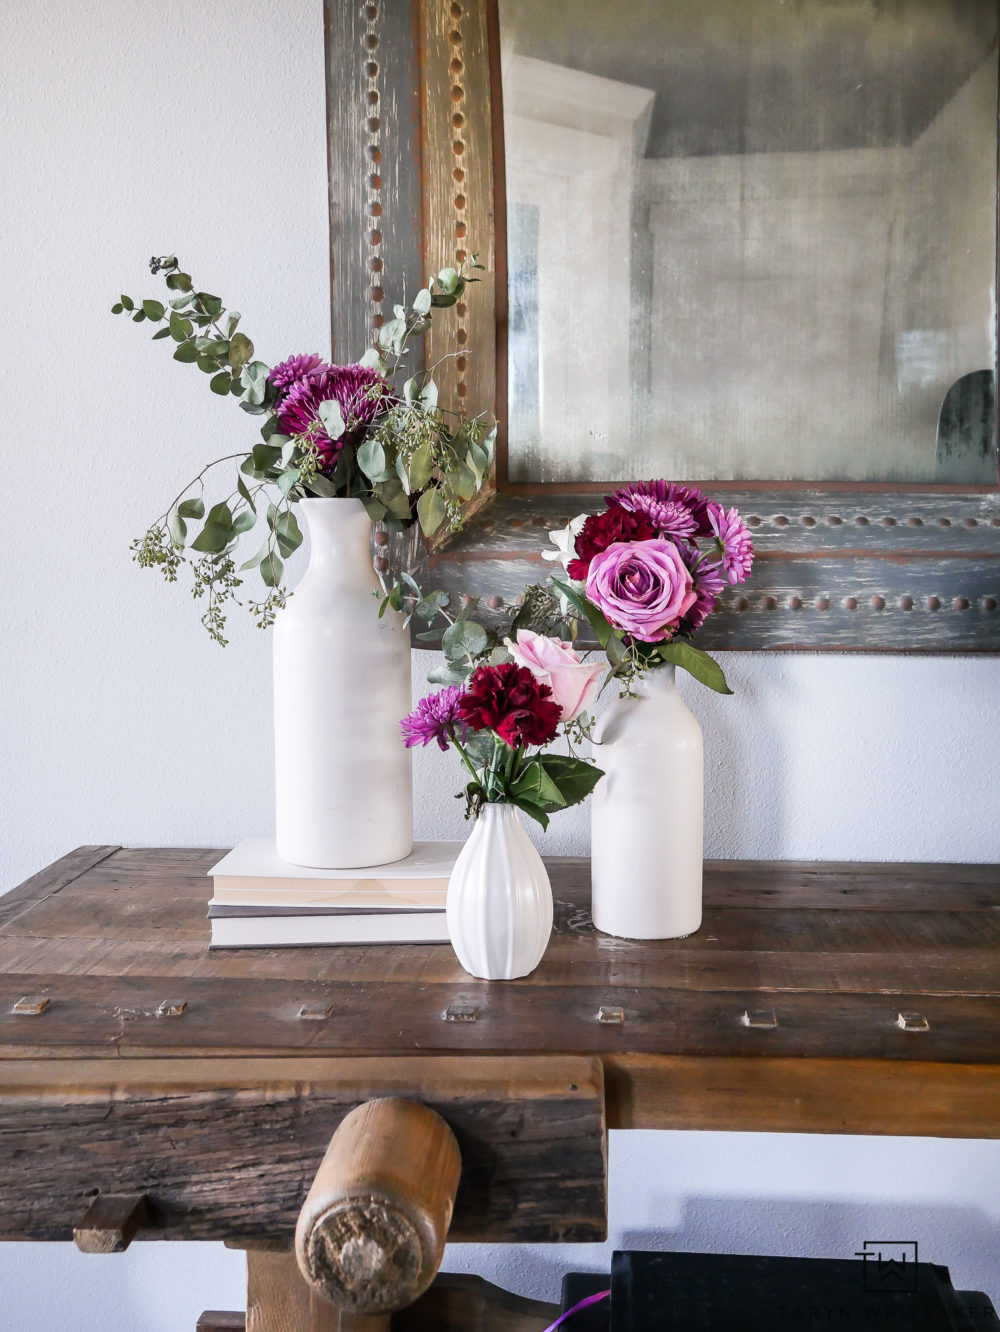 Create your own flower arrangements using flowers from the grocery store! they give every space such a breath of fresh air. Love decorating with fresh flowers!